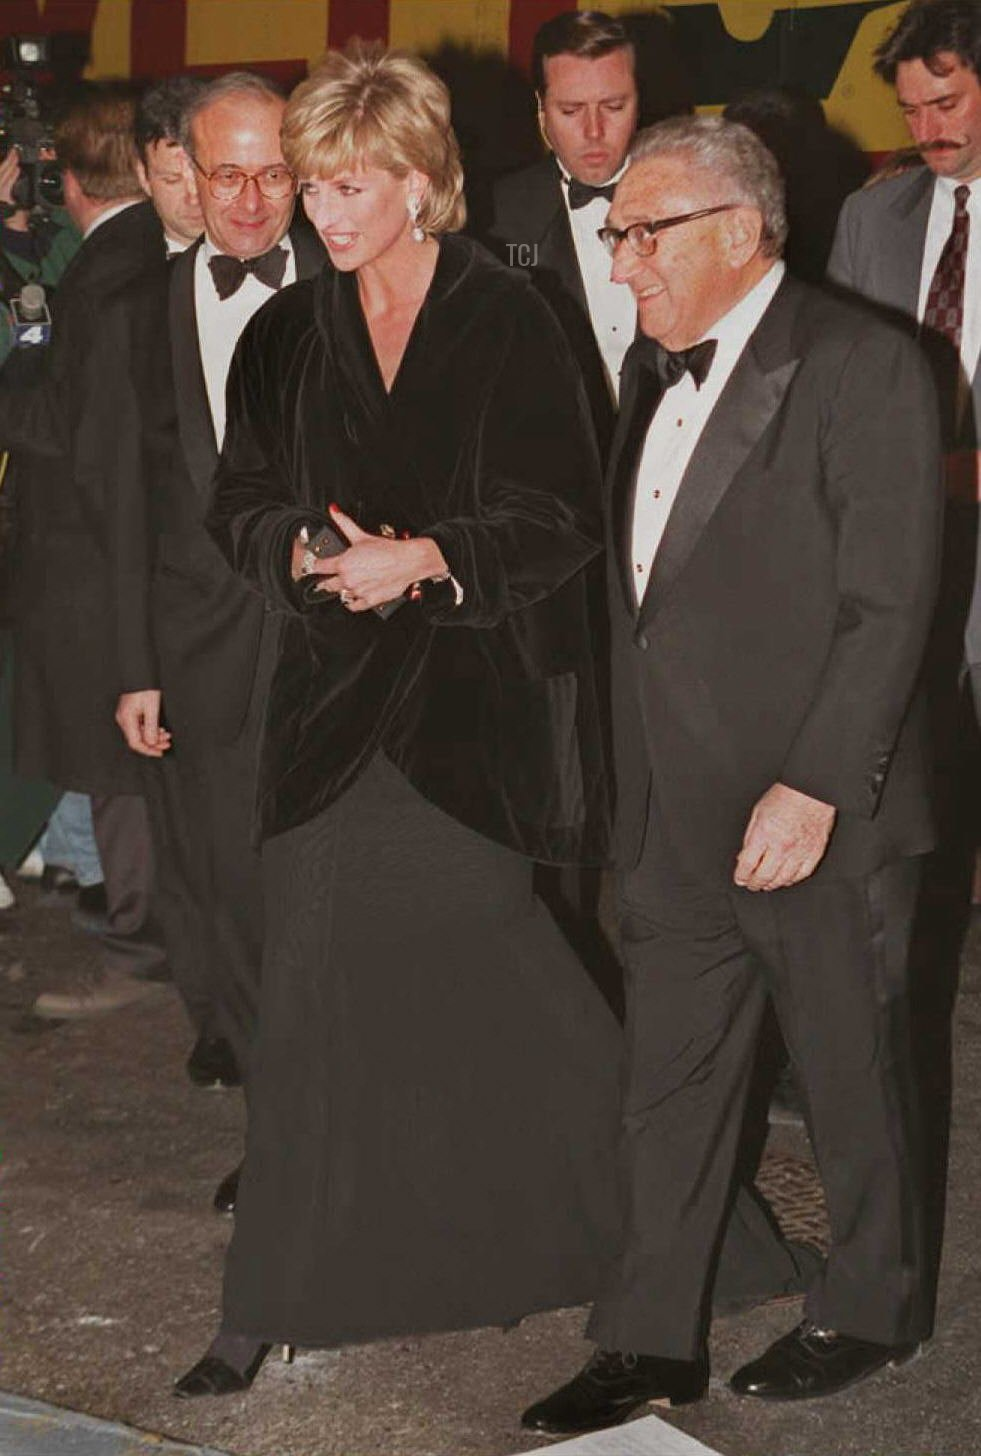 rincess Diana (L) is met by former US Secretary of State Henry Kissinger as she arrives at a black-tie benefit gala in New York 11 December. At the gala Kissinger will present the Princess with the 1995 United Cerebral Palsy Humanitarian of the Year award for her charity work